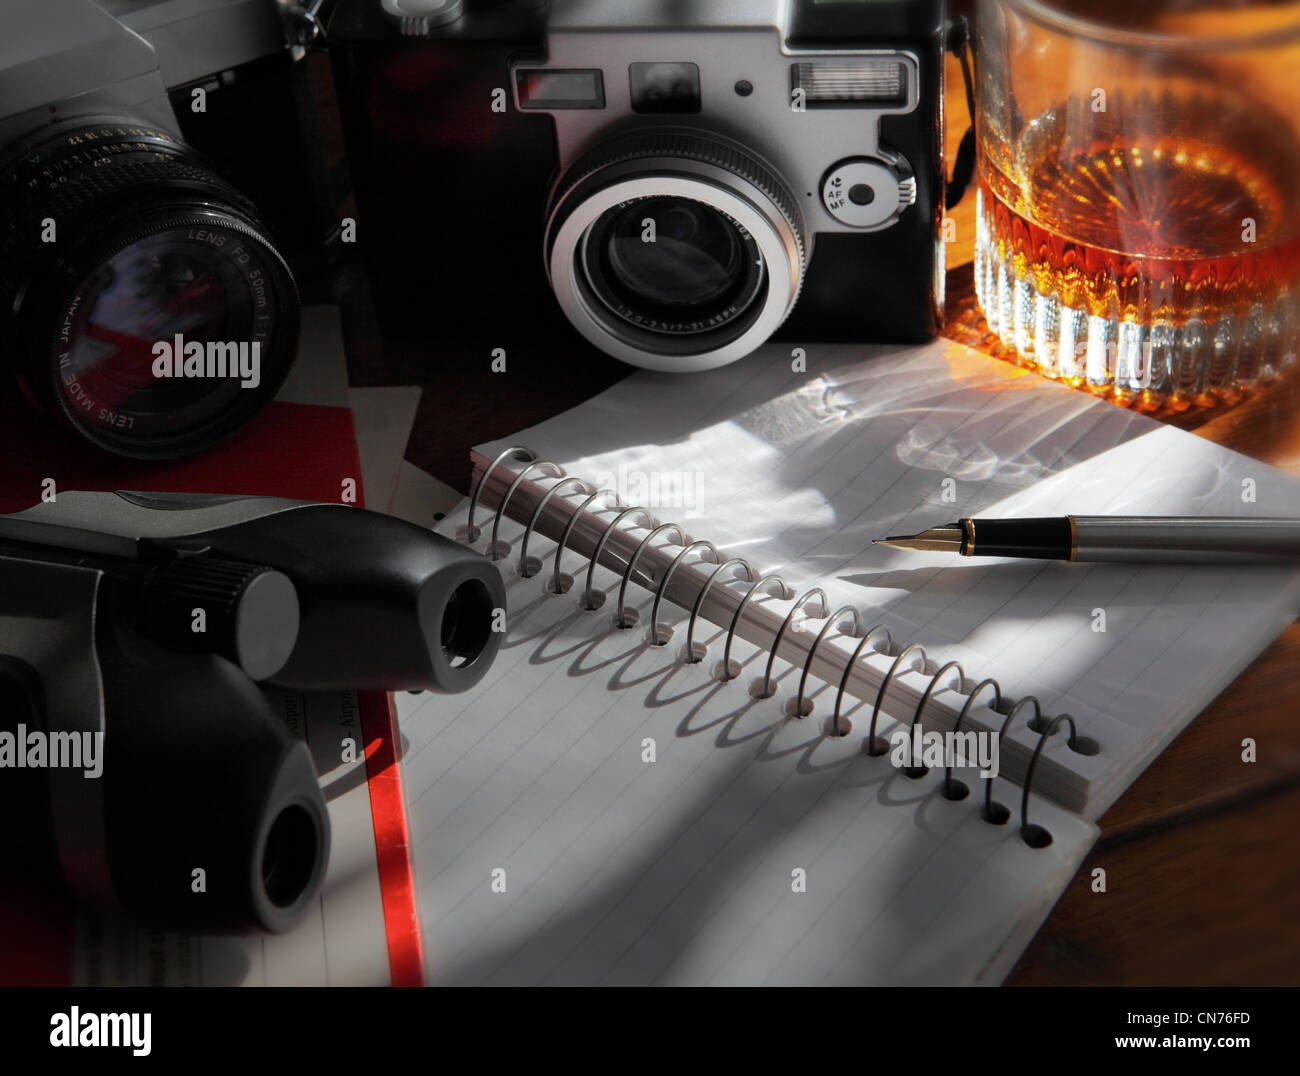 cameras, binoculars,  a liquor glass,  and an open journal and pen resting on a wooden table - Stock Image